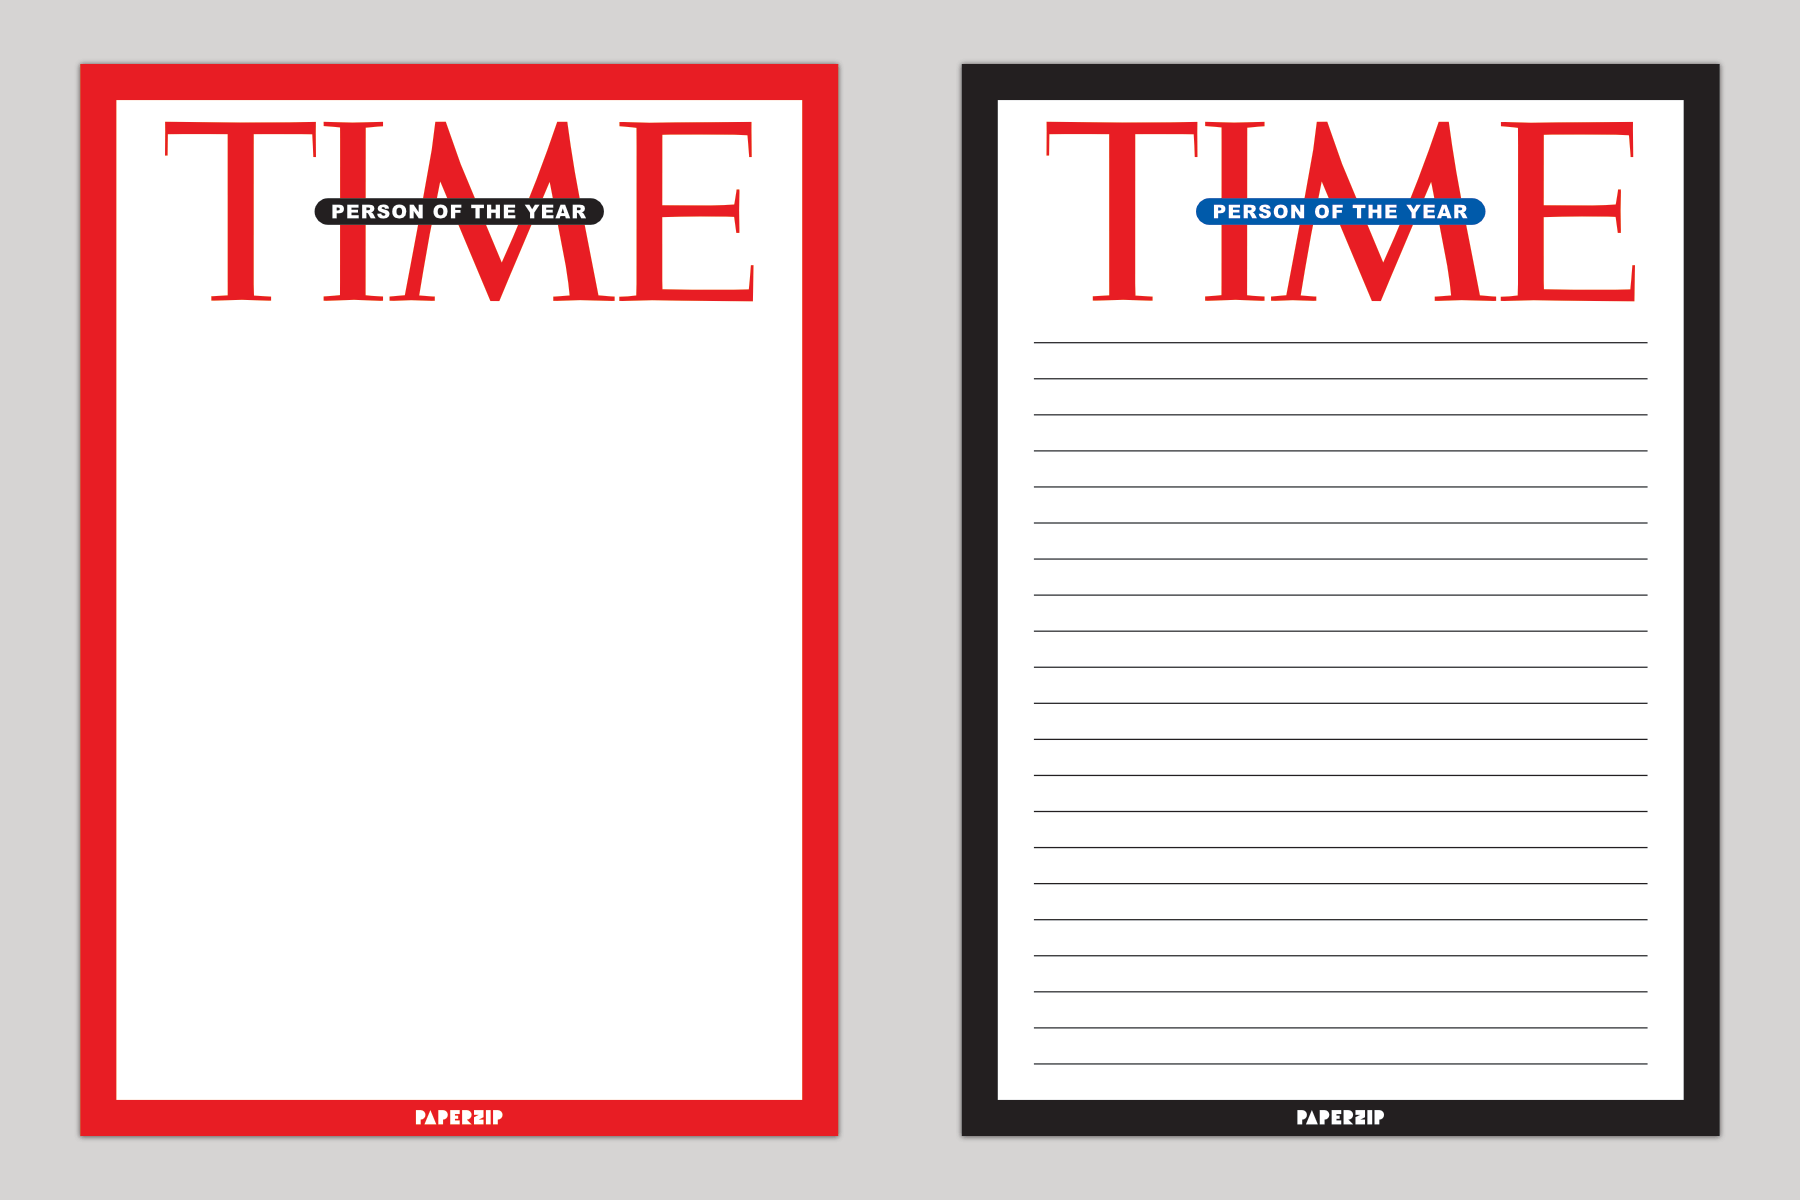 time magazine person of the year templates paperzip